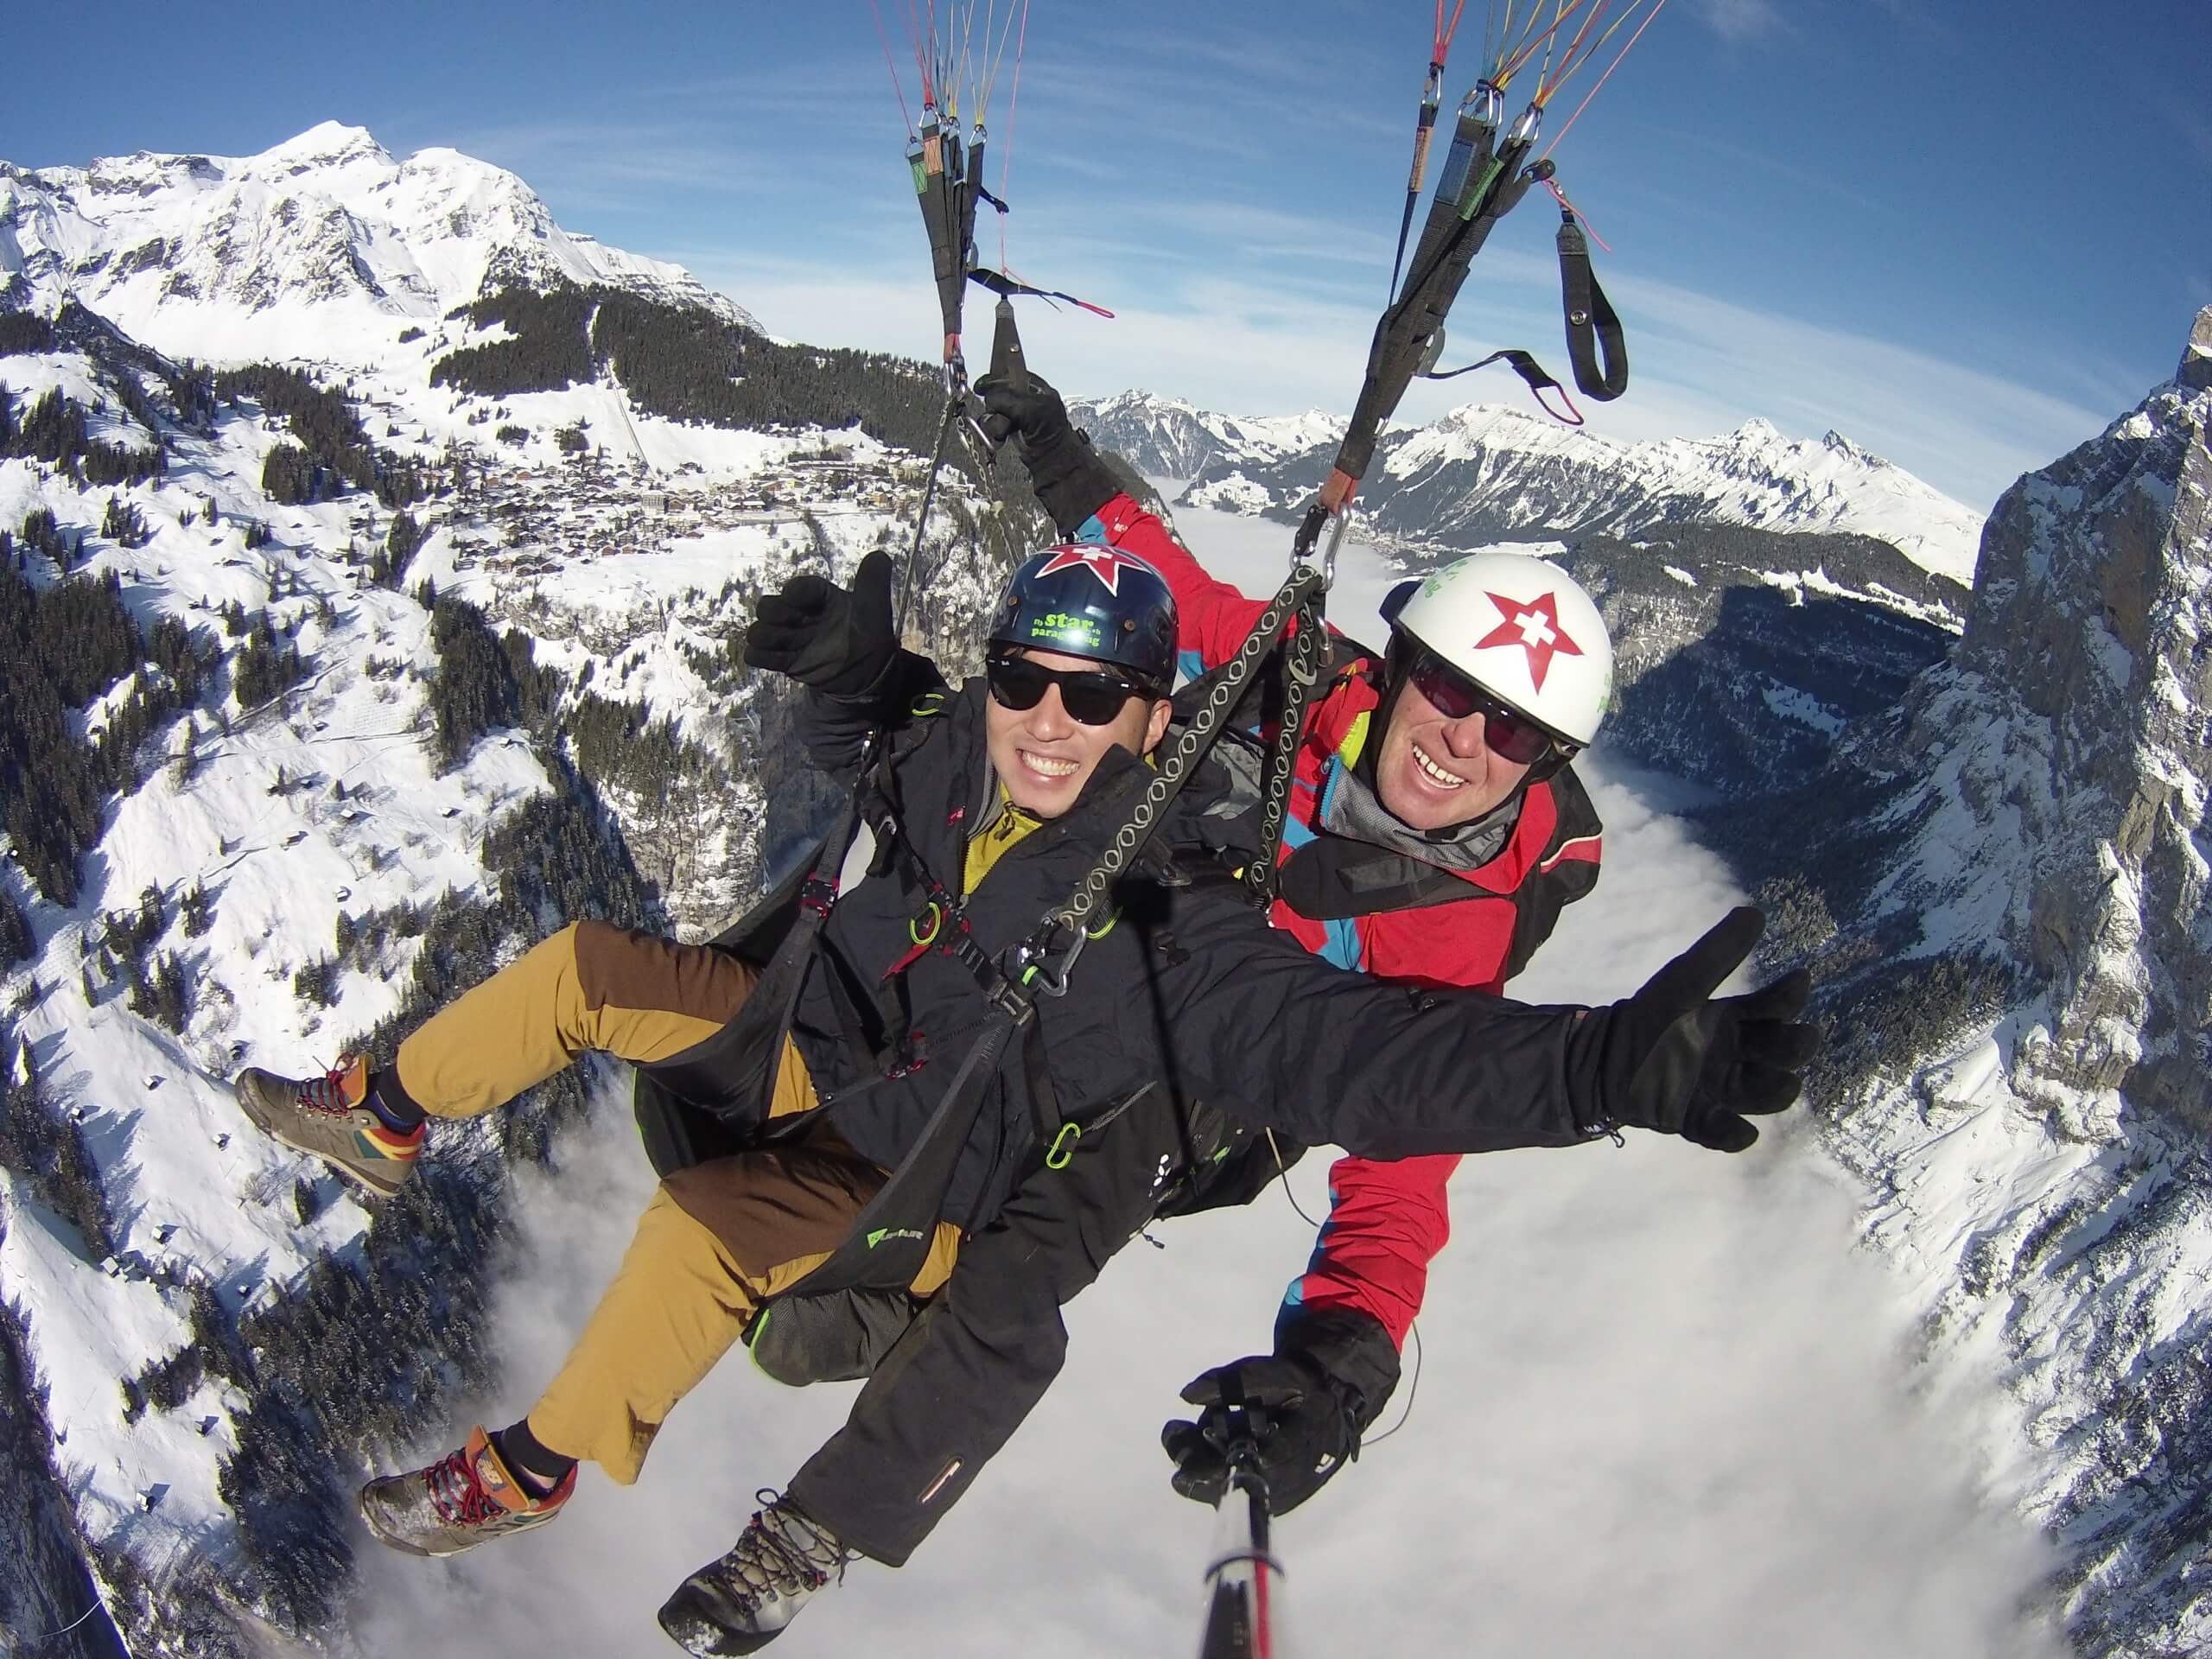 star-paragliding-panorama-berge-winter